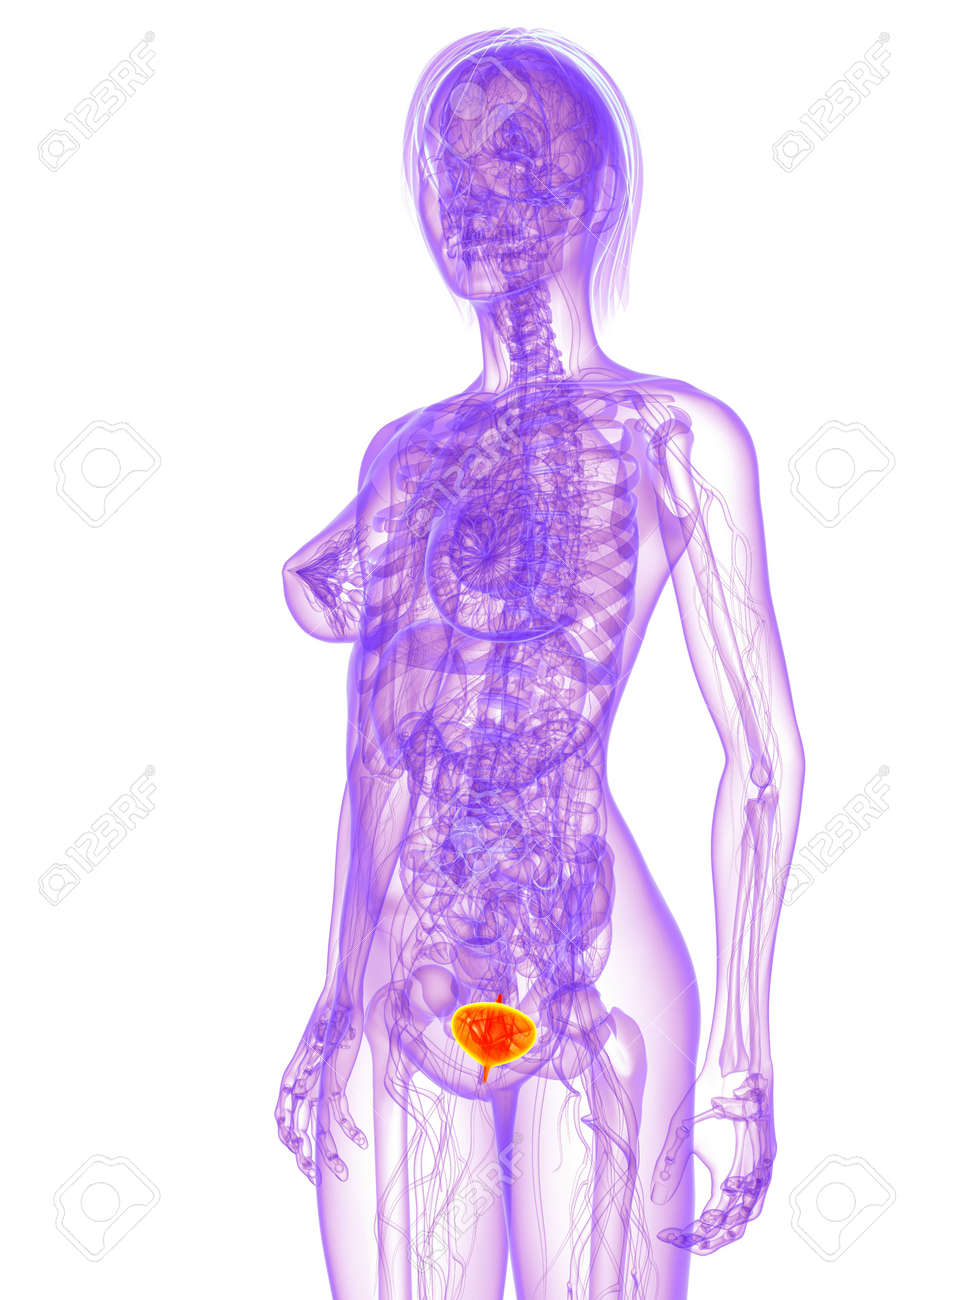 Female Anatomy - Bladder Stock Photo, Picture And Royalty Free Image ...